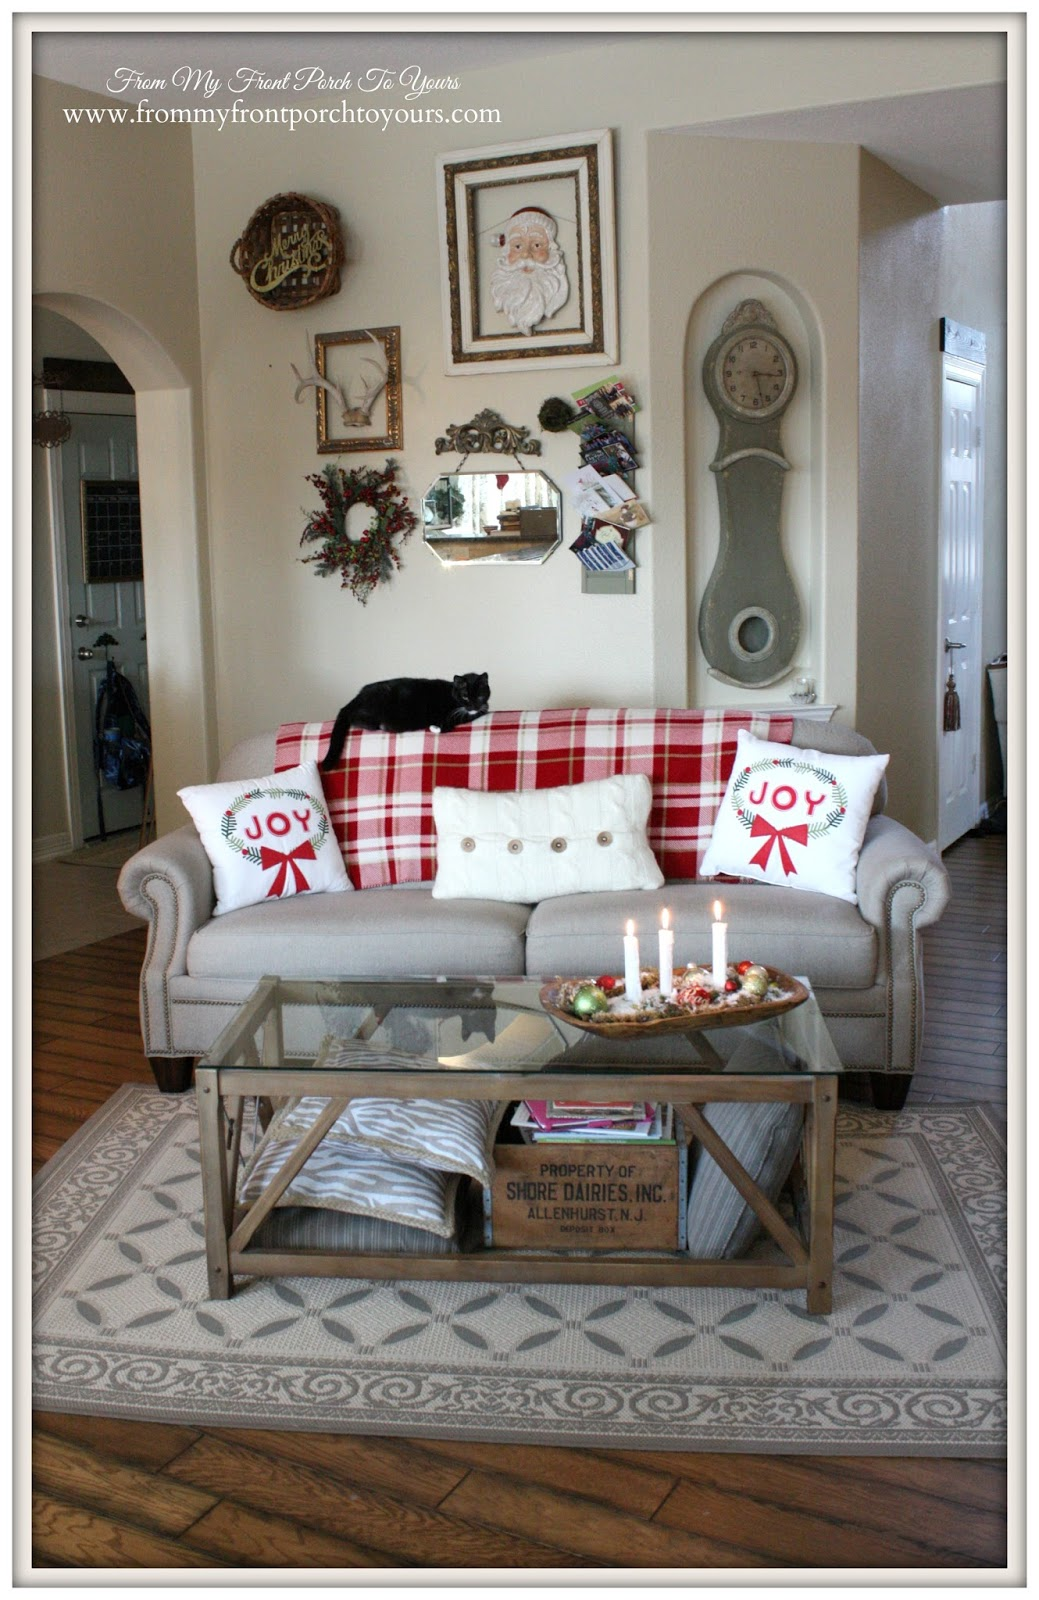 Farmhouse -Vintage- Christmas- Living Room- Vignettes-From My Front Porch To Yours